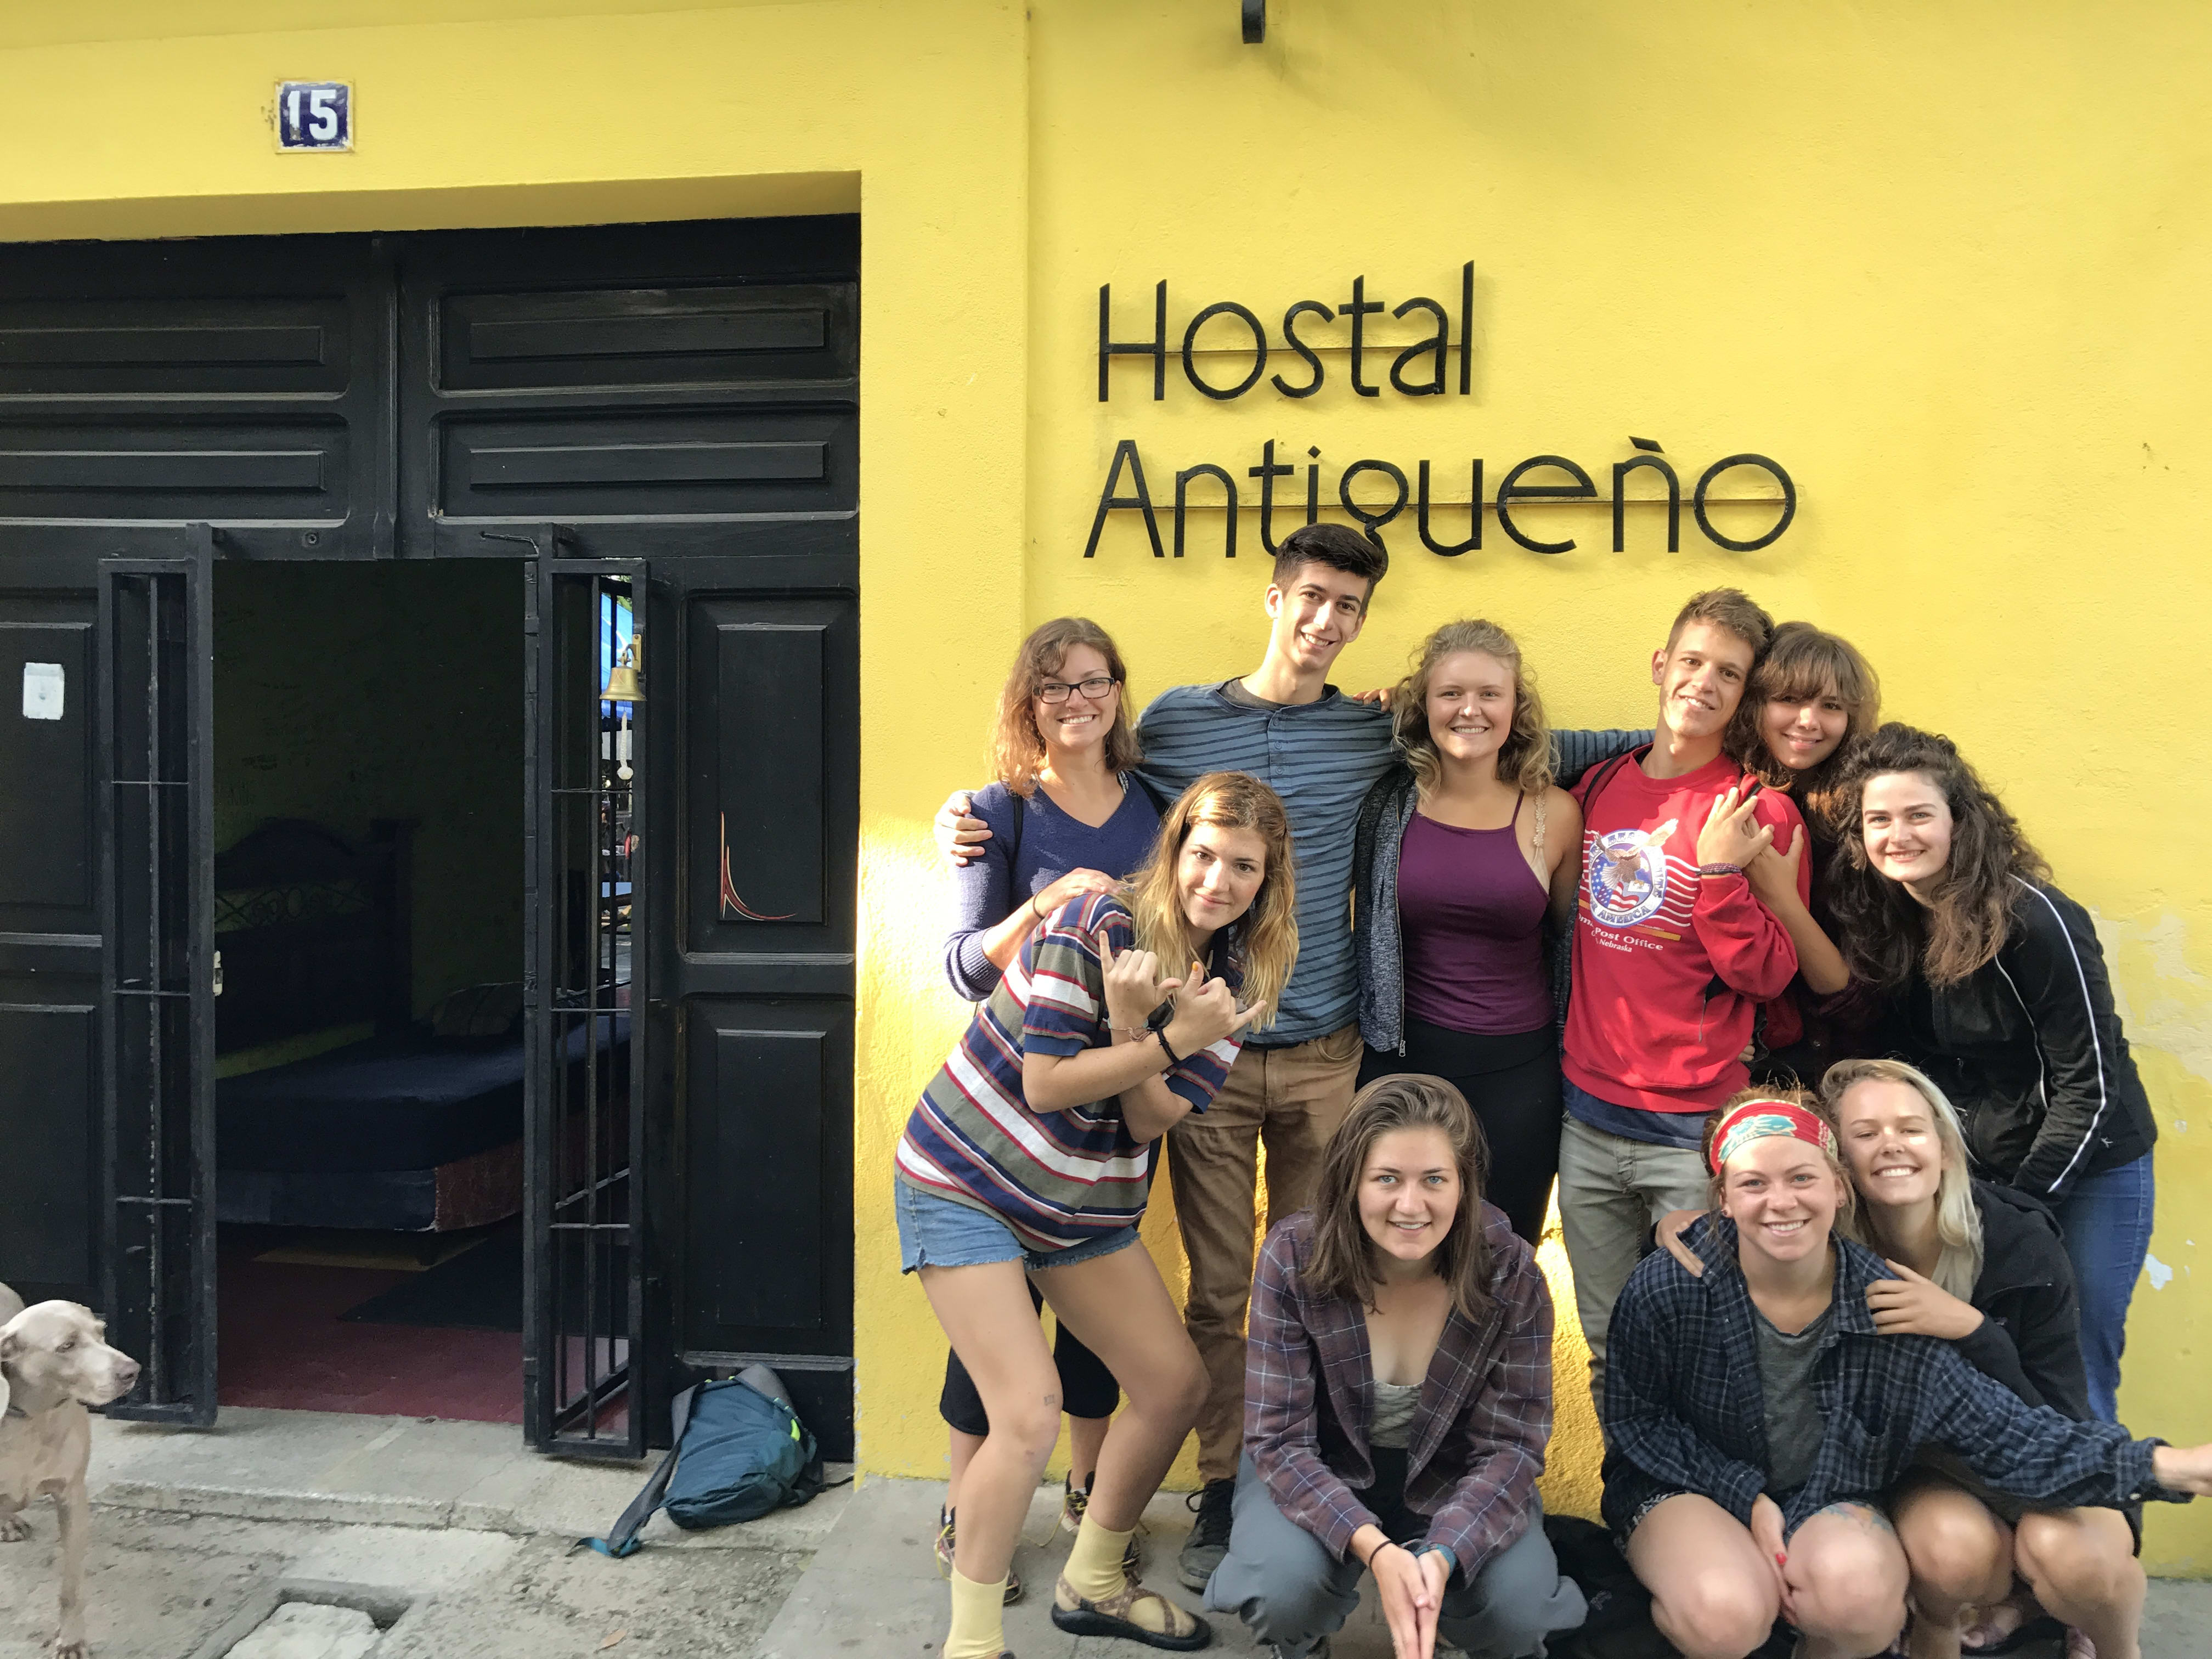 HOSTEL - Hostel Antigueno